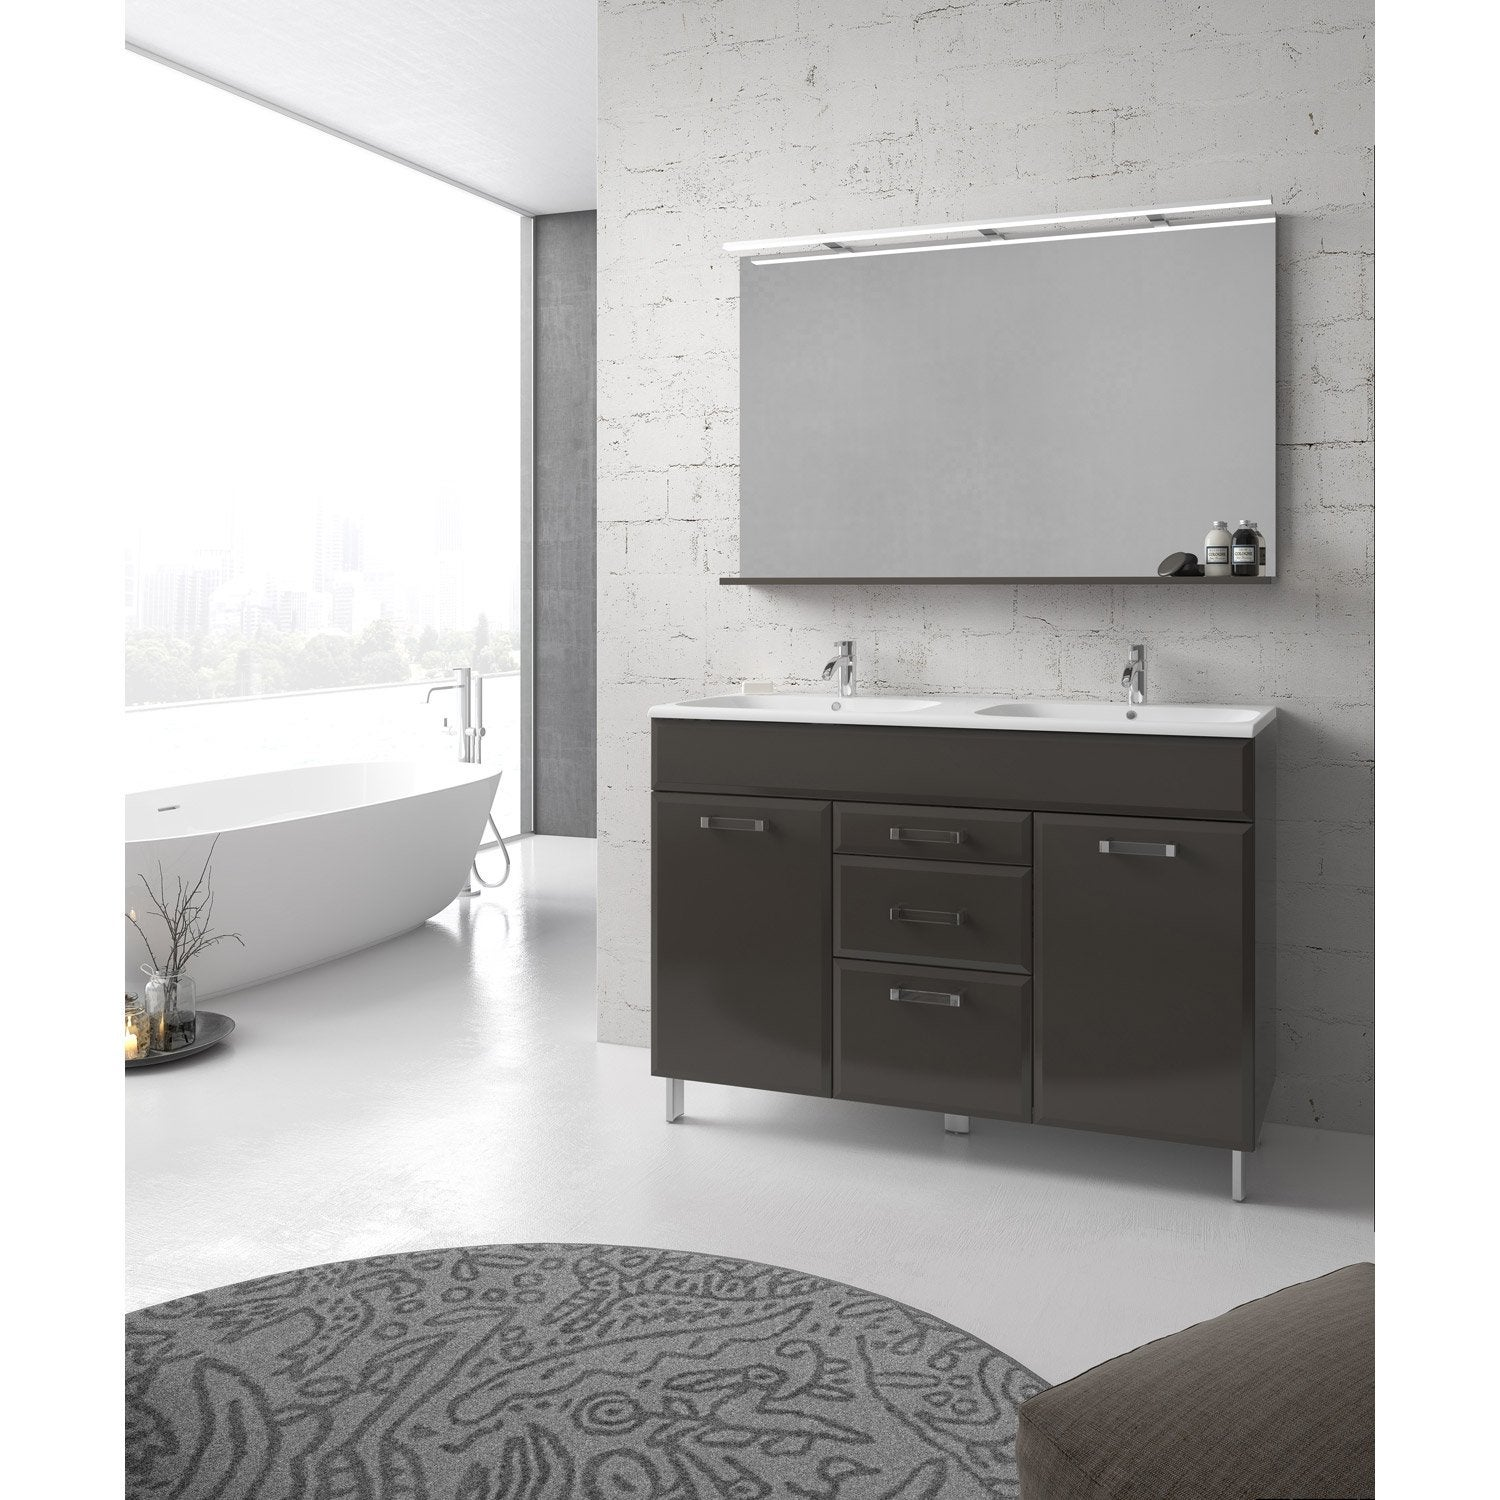 meuble de salle de bains plus de 120 gris argent opale leroy merlin. Black Bedroom Furniture Sets. Home Design Ideas